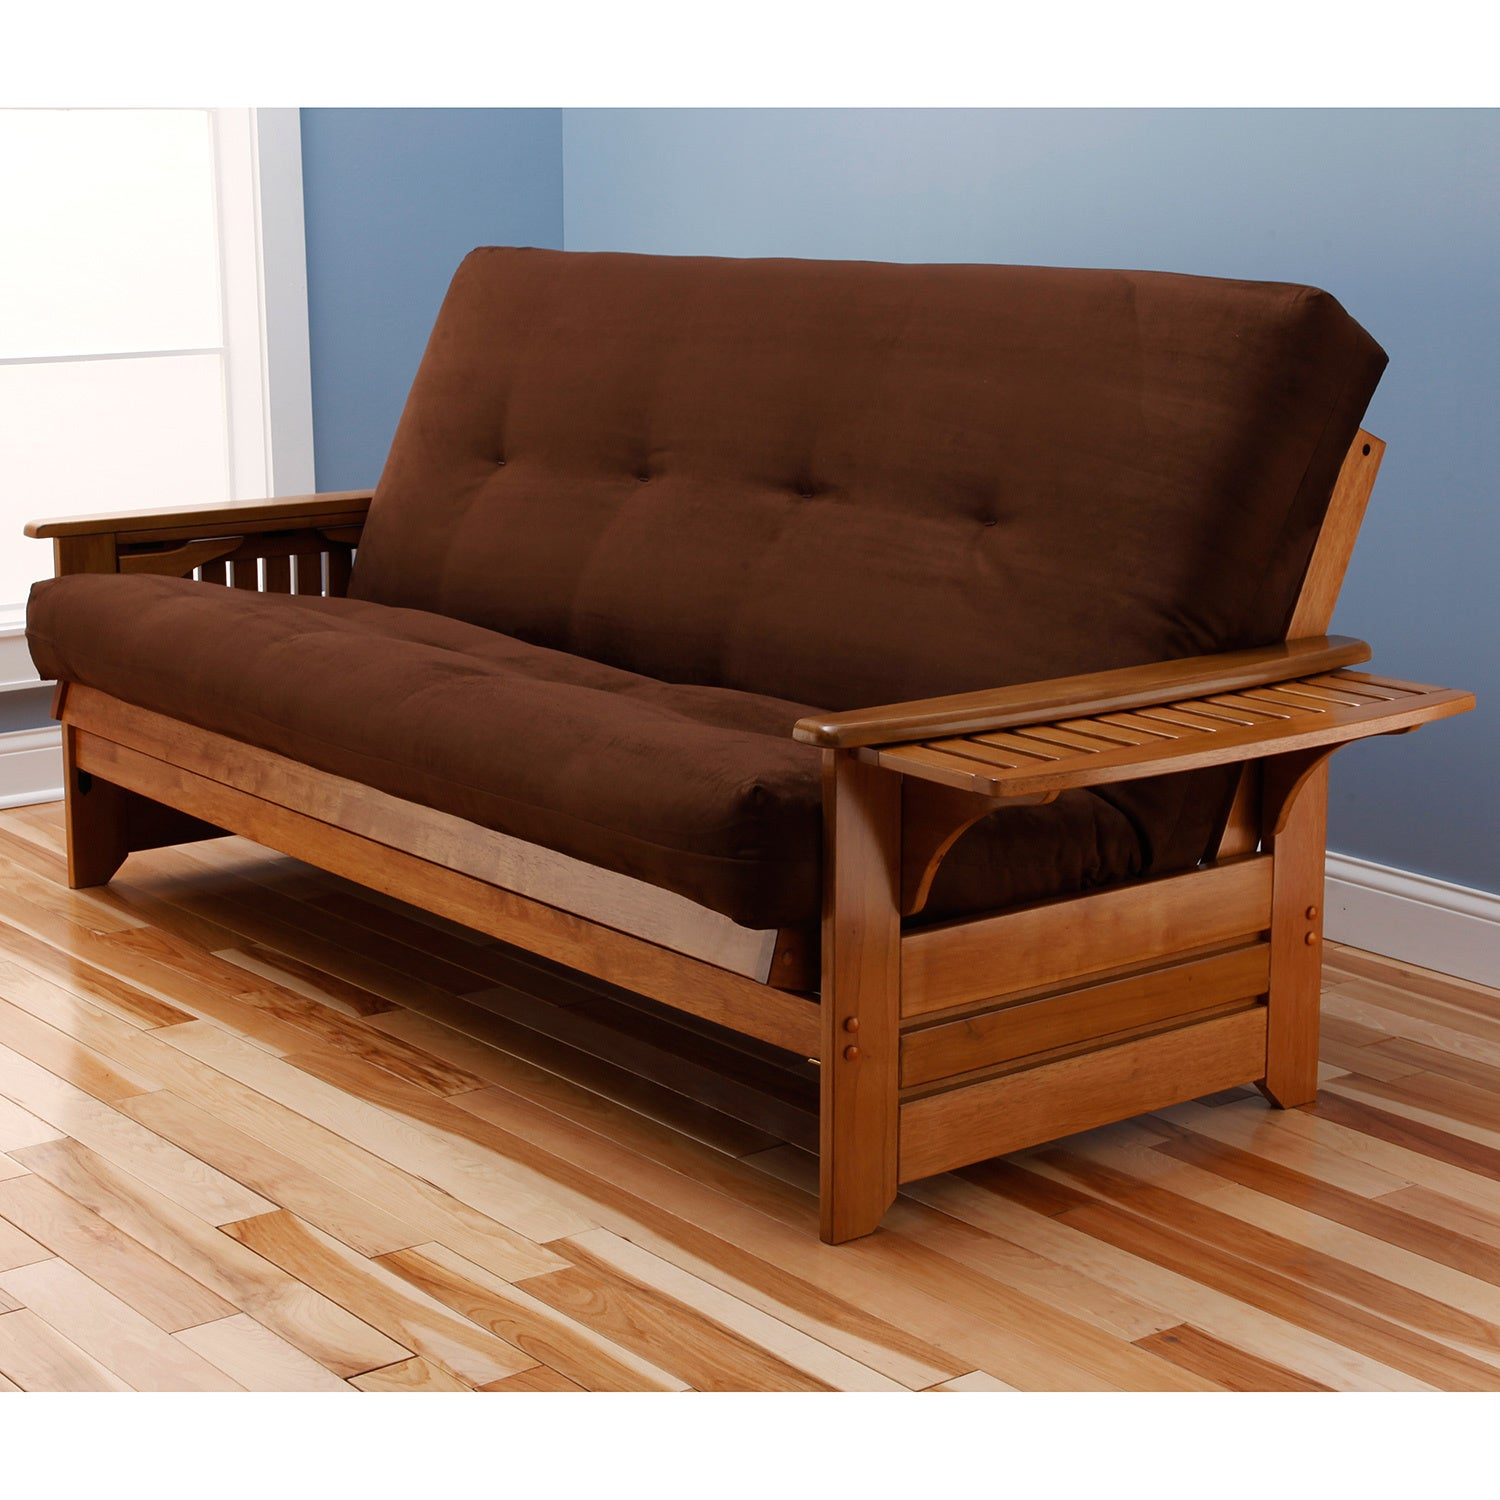 full size futon frame wood 28 images mattress full size futon